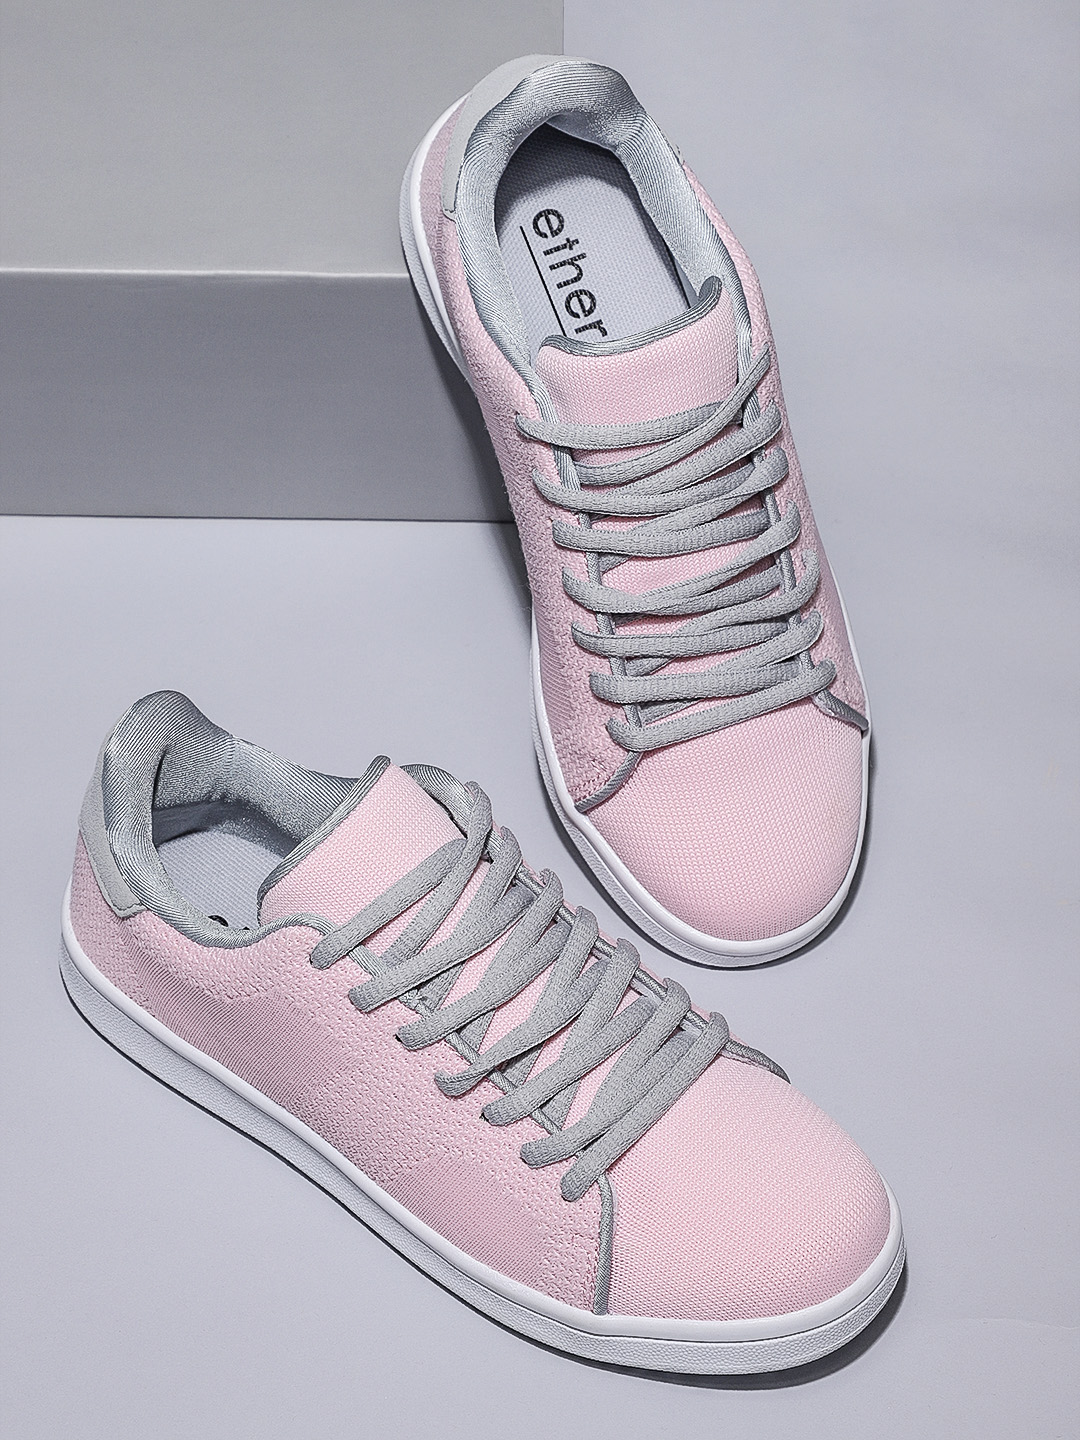 ether Women Pink &Grey Sneakers Price in India